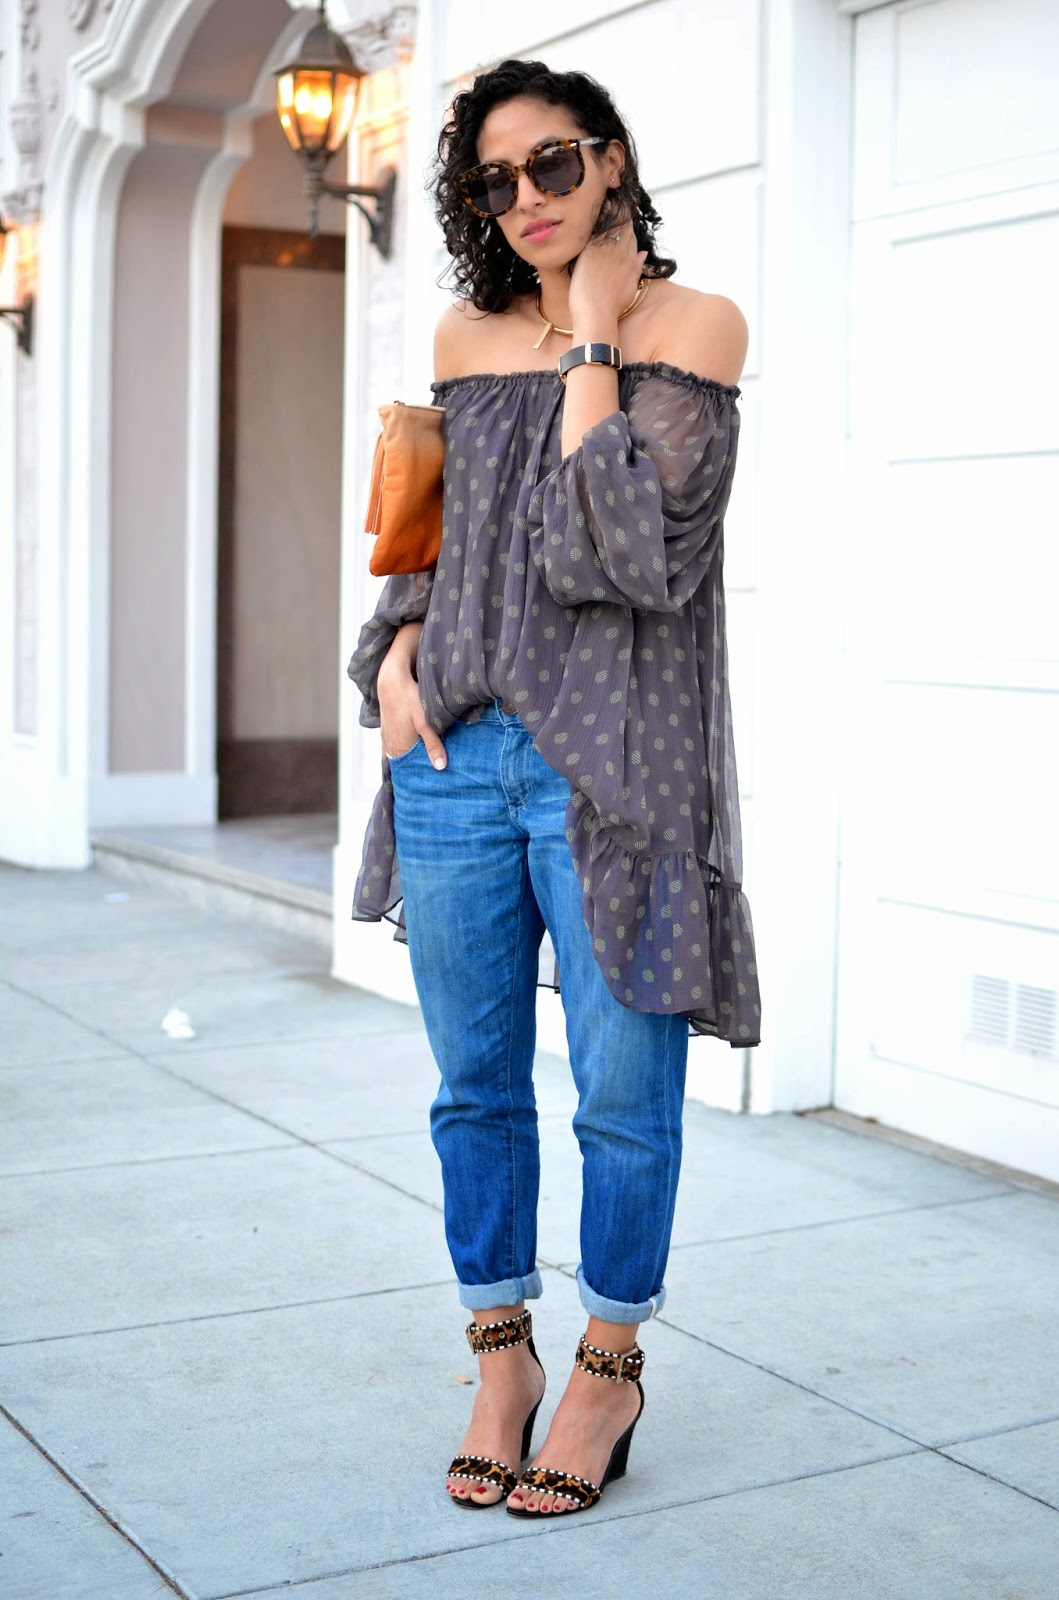 SF style, curly hair, True Religion denim, Off-the-Shoulder Top, off the shoulder dress, The 2 Bandits, J. Crew gold choker, B Brian Atwood, spring style, AYK Versa bag, TOKYObay watch, Karen Walker Super Sunglasses,